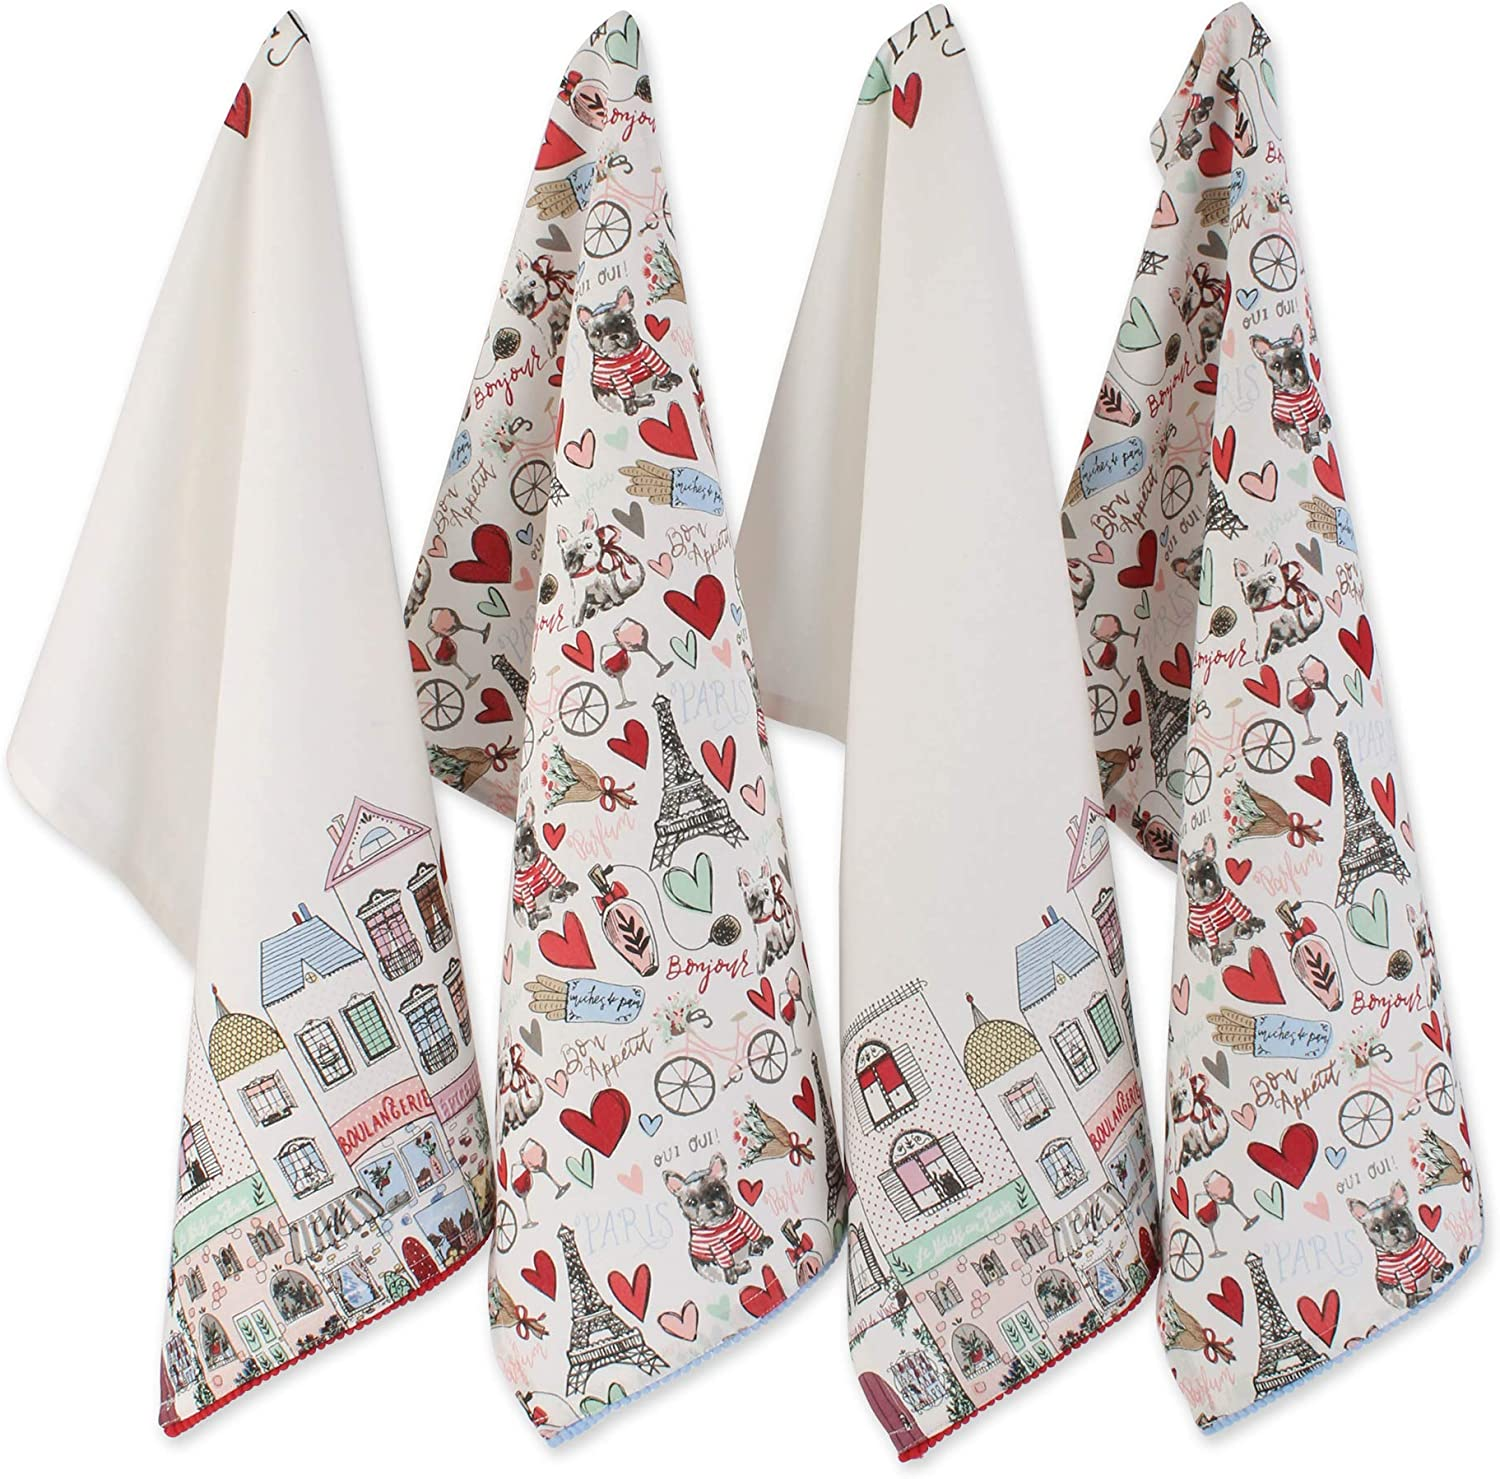 DII I Love Paris Collection Kitchen, Dishtowel Set, Eiffel Tower 4 Piece